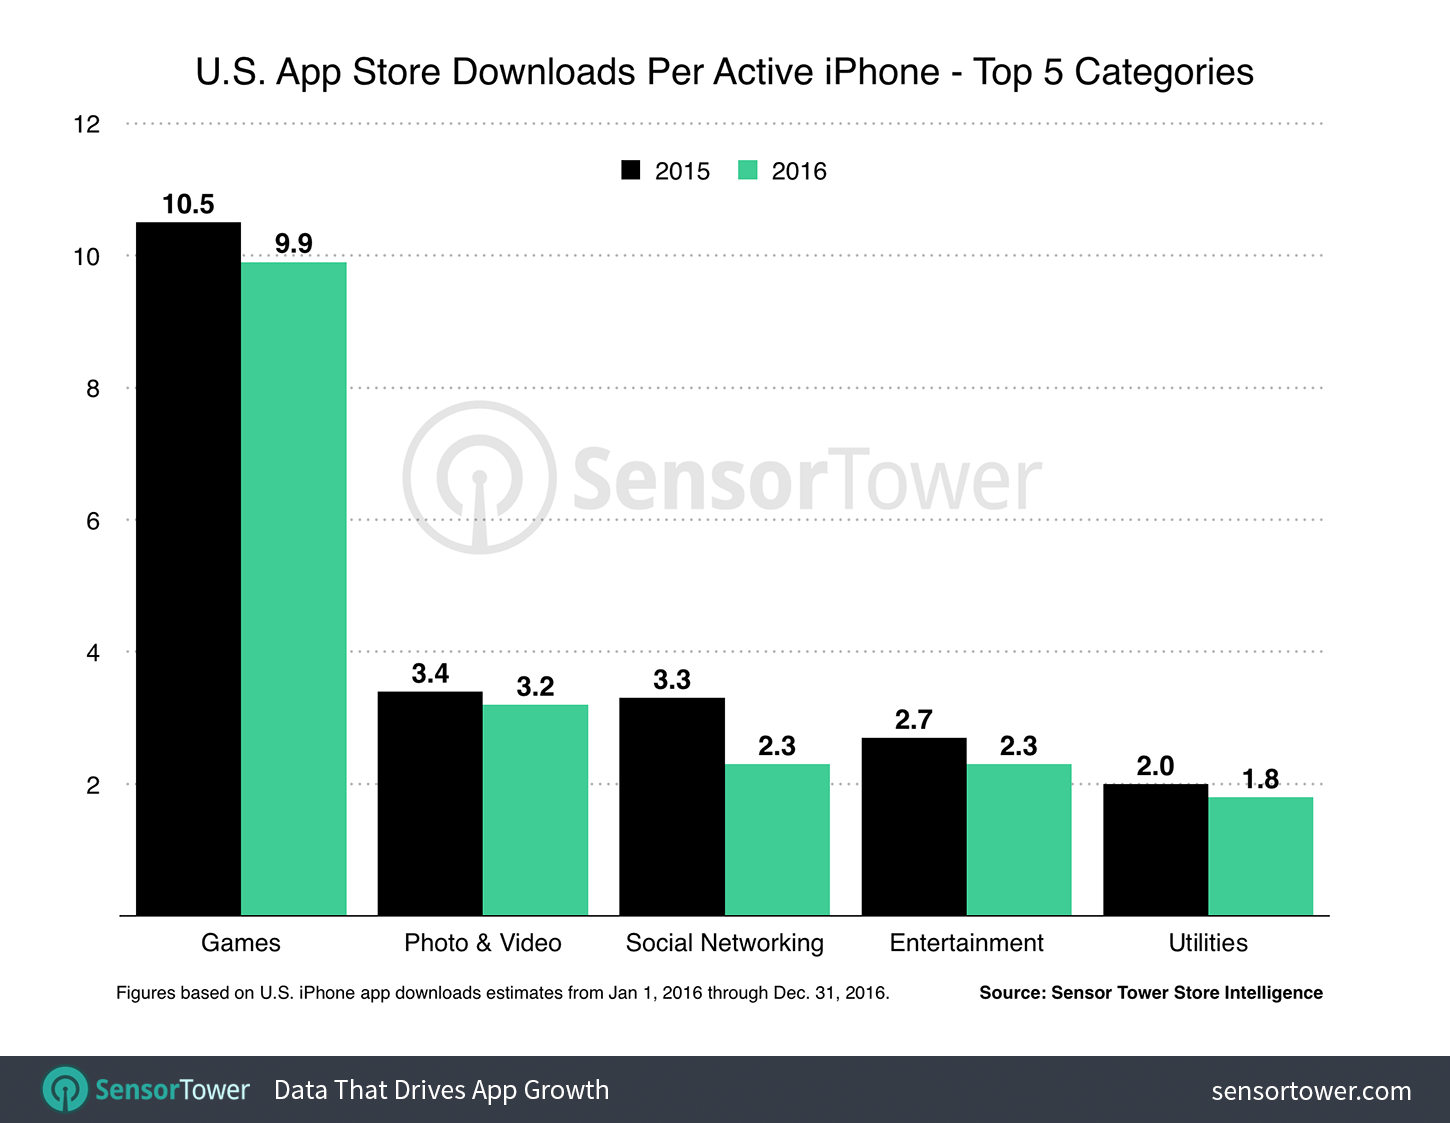 US iPhone Users Spent an Average of $40 on Apps Last Year